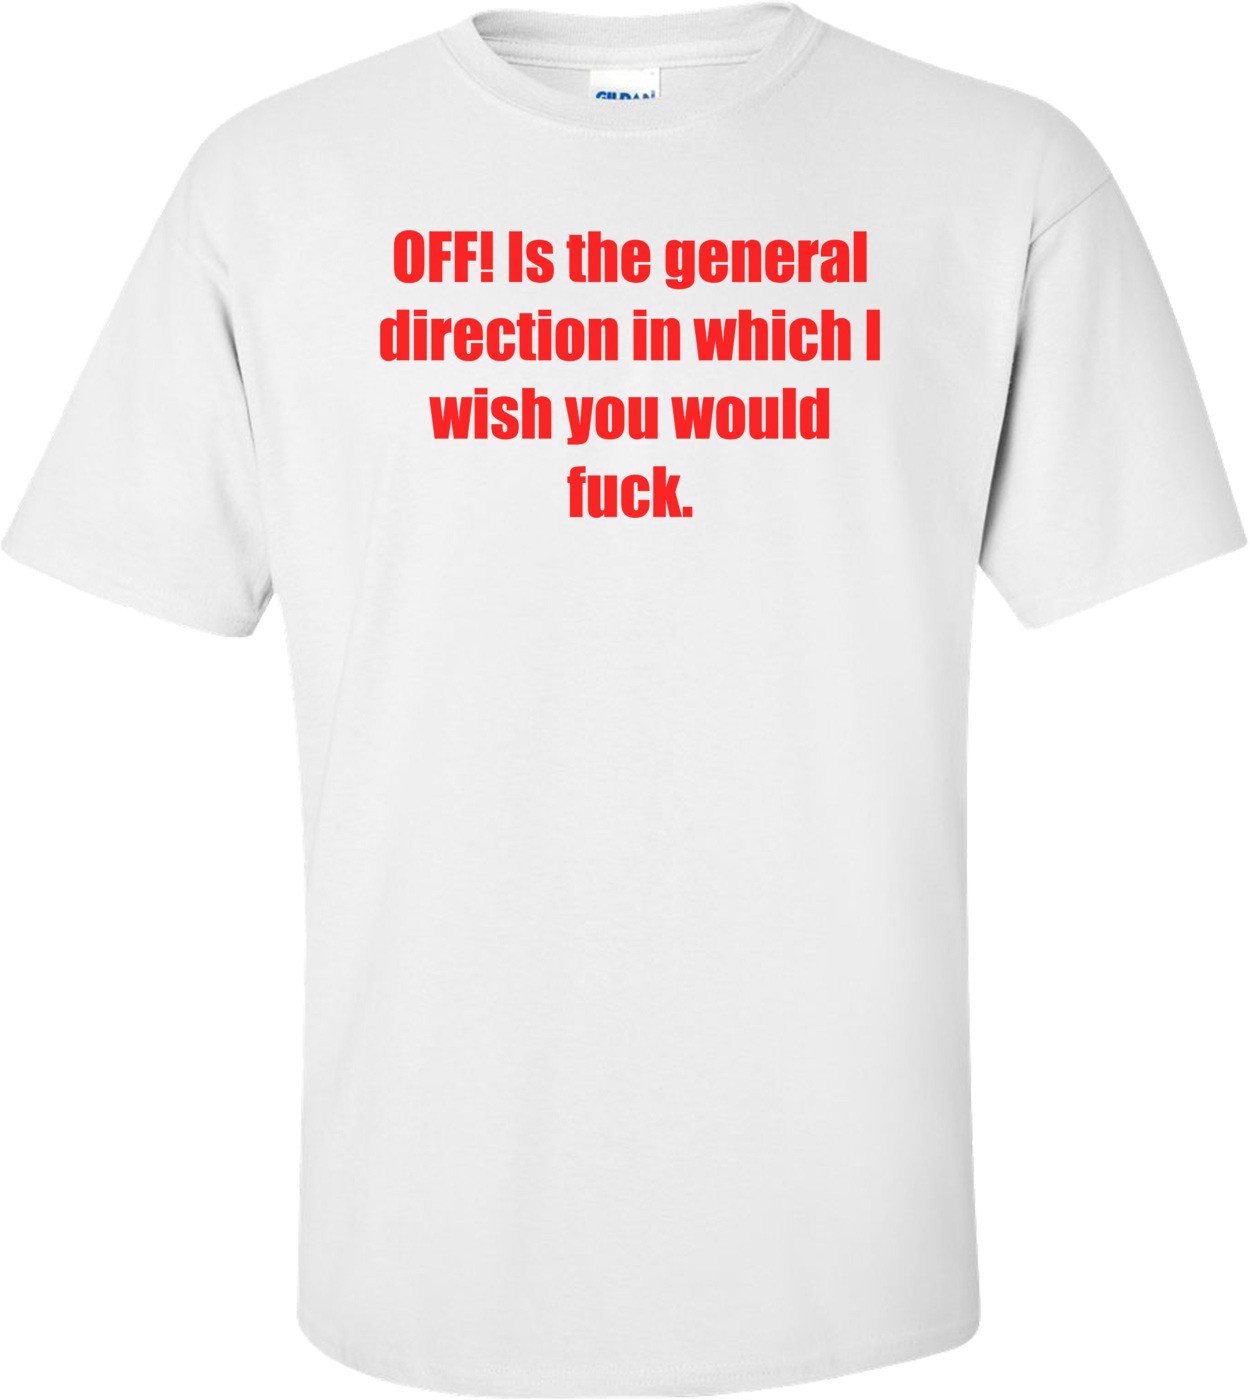 OFF! Is the general direction in which I wish you would fuck. Shirt